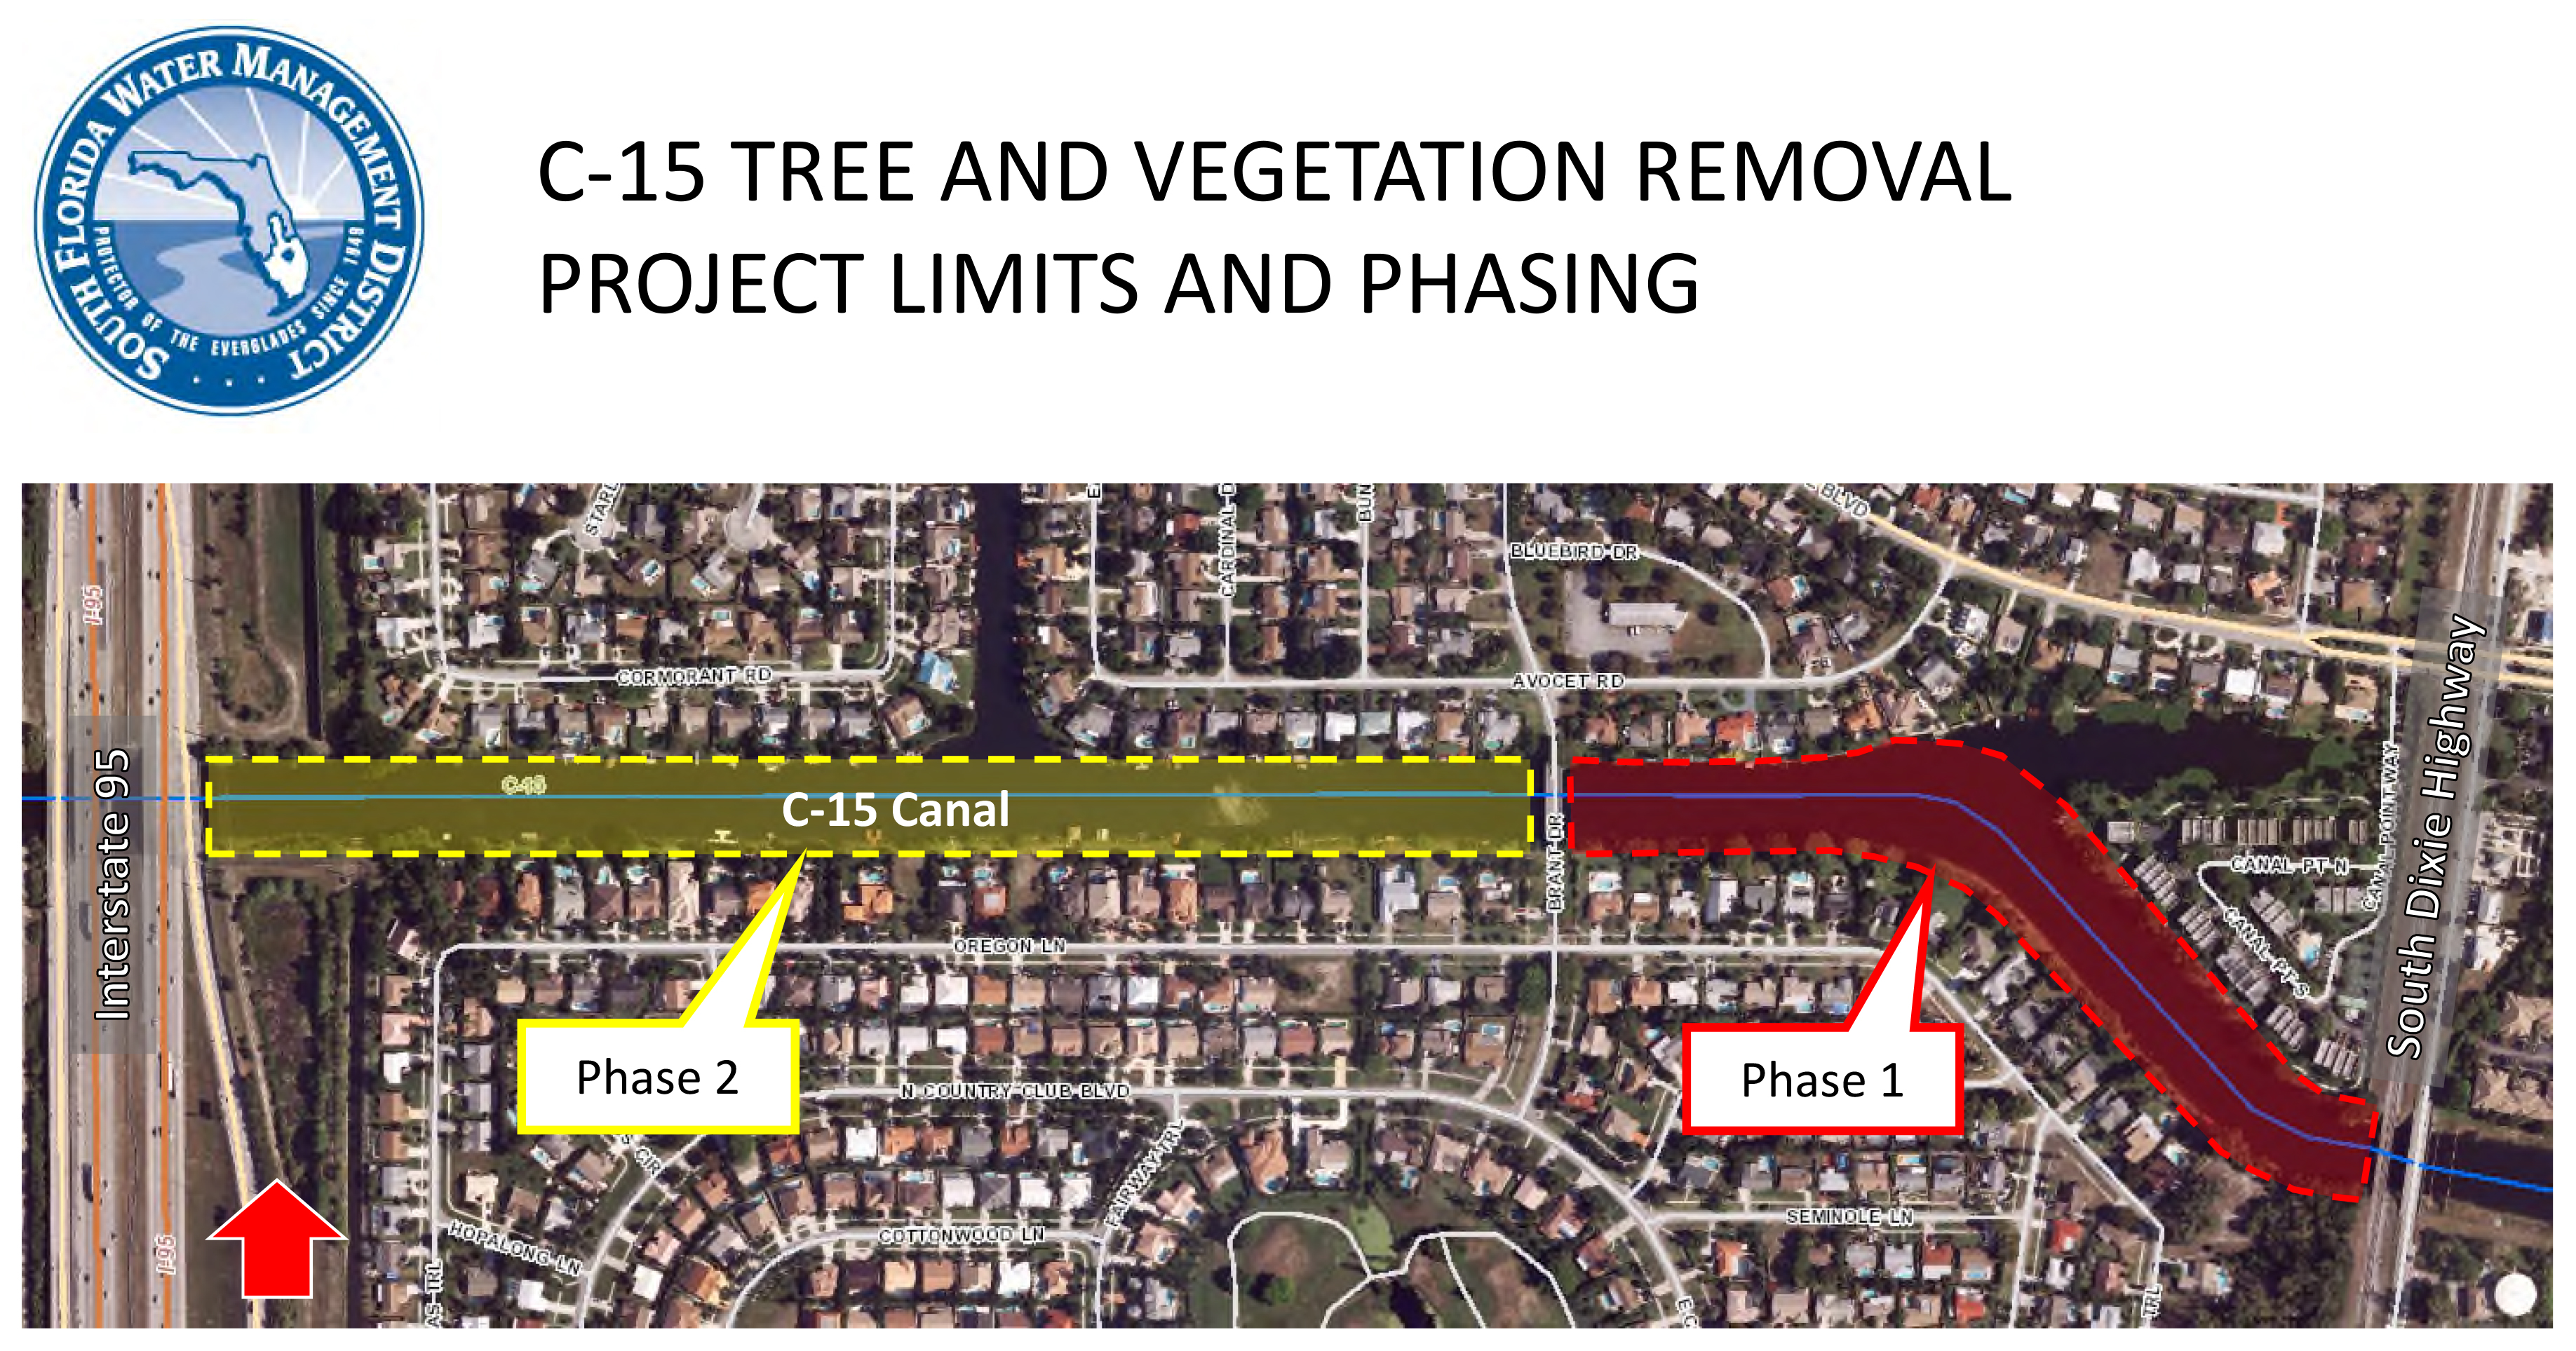 MAP: C-15 Canal and Tree Vegetation Removal Project